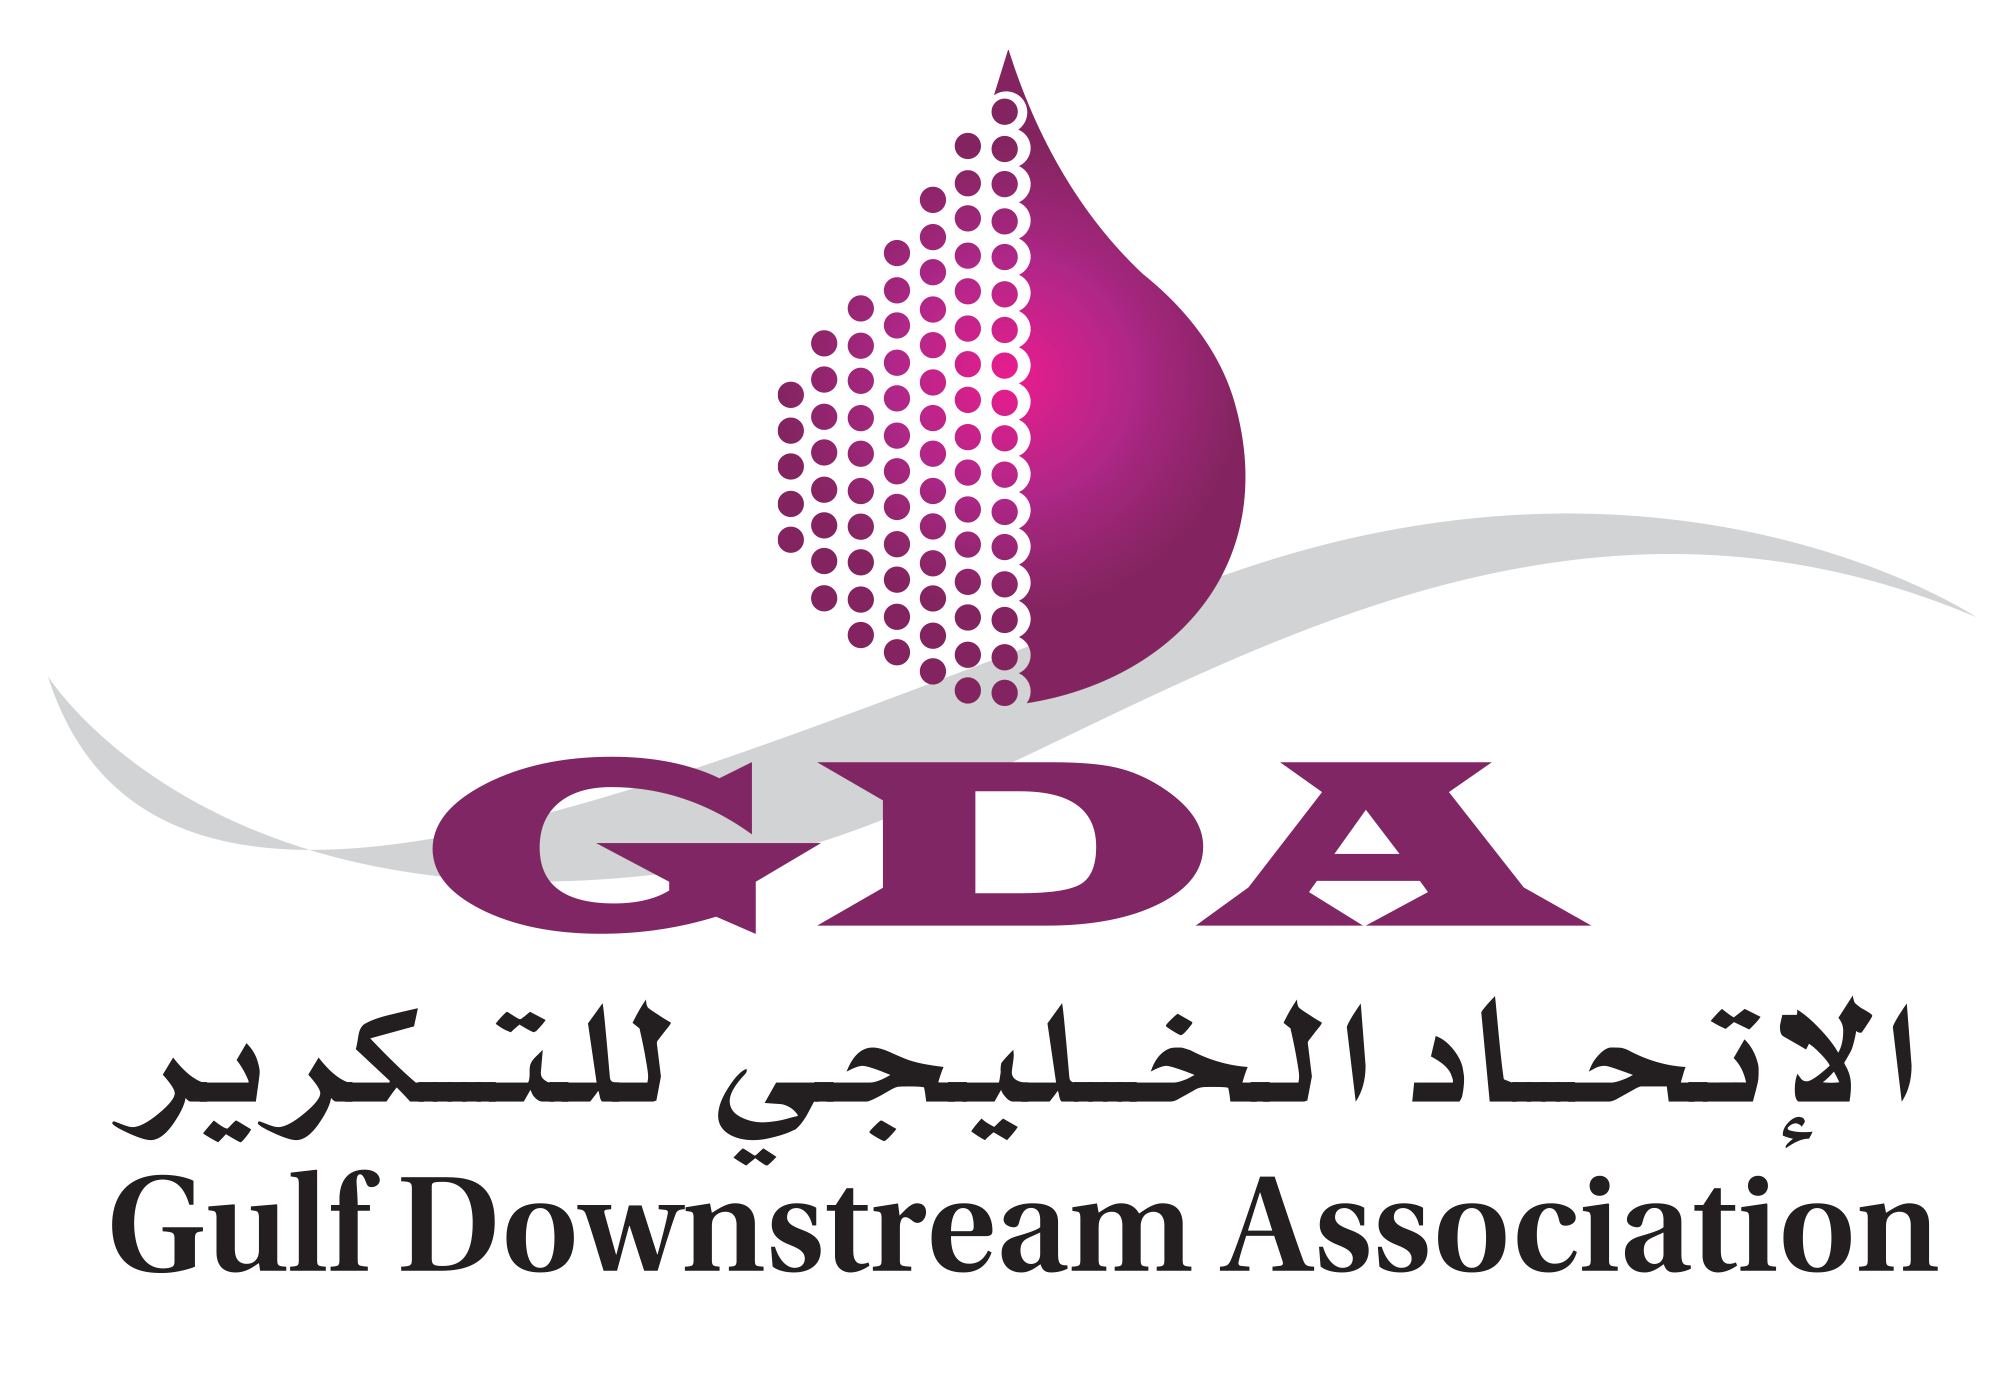 Gulf Downstream Association (GDA)